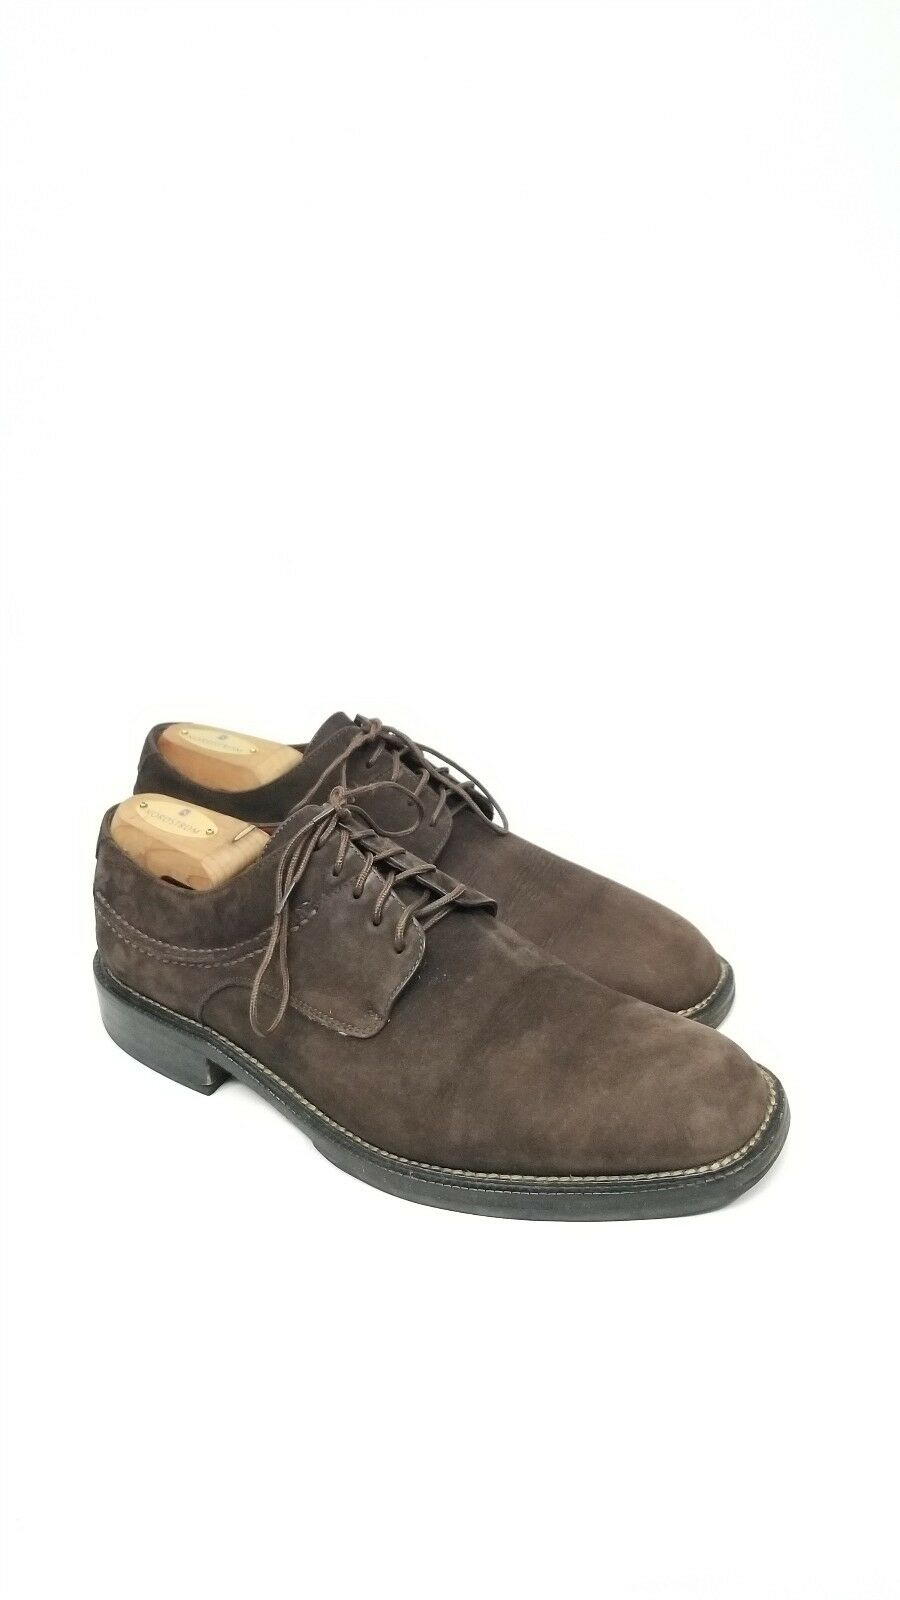 Men's Cole Haan Lace Up Dress shoes Brown Suede Leather 10 M